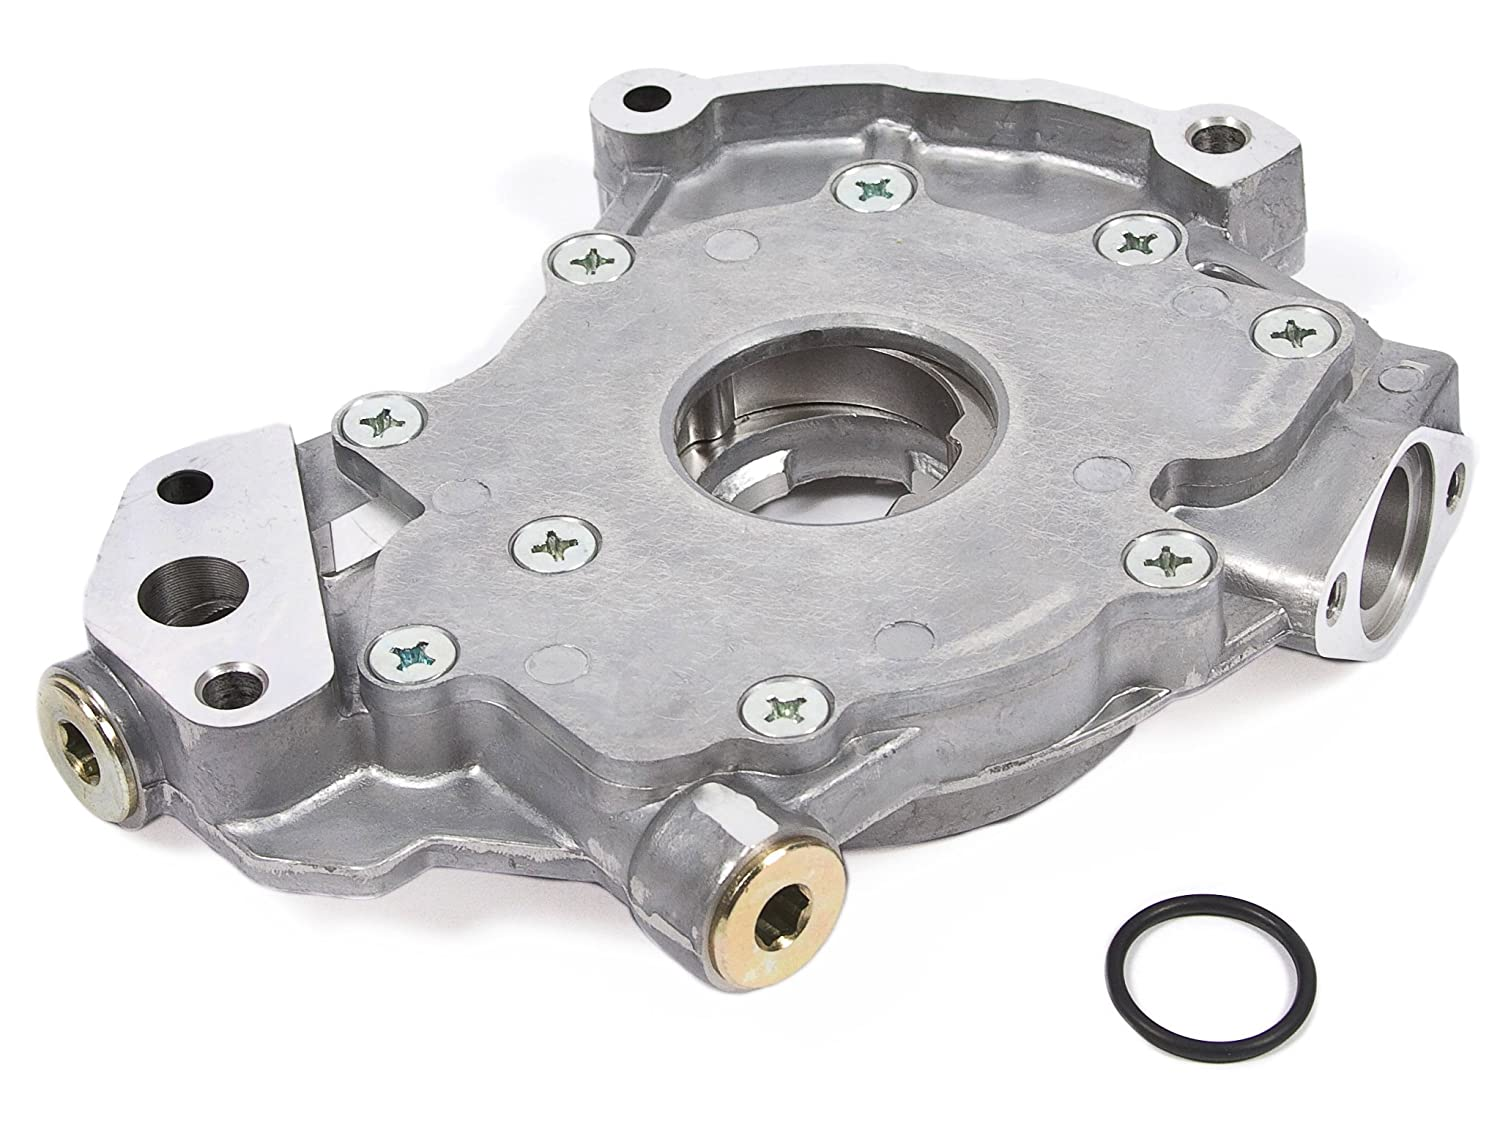 6.8 SOHC 20V VIN S Timing Chain Kit Oil Pump Evergreen TK6054EOP Fits 97-01 Ford Lincoln 5.4 SOHC 16V VIN L